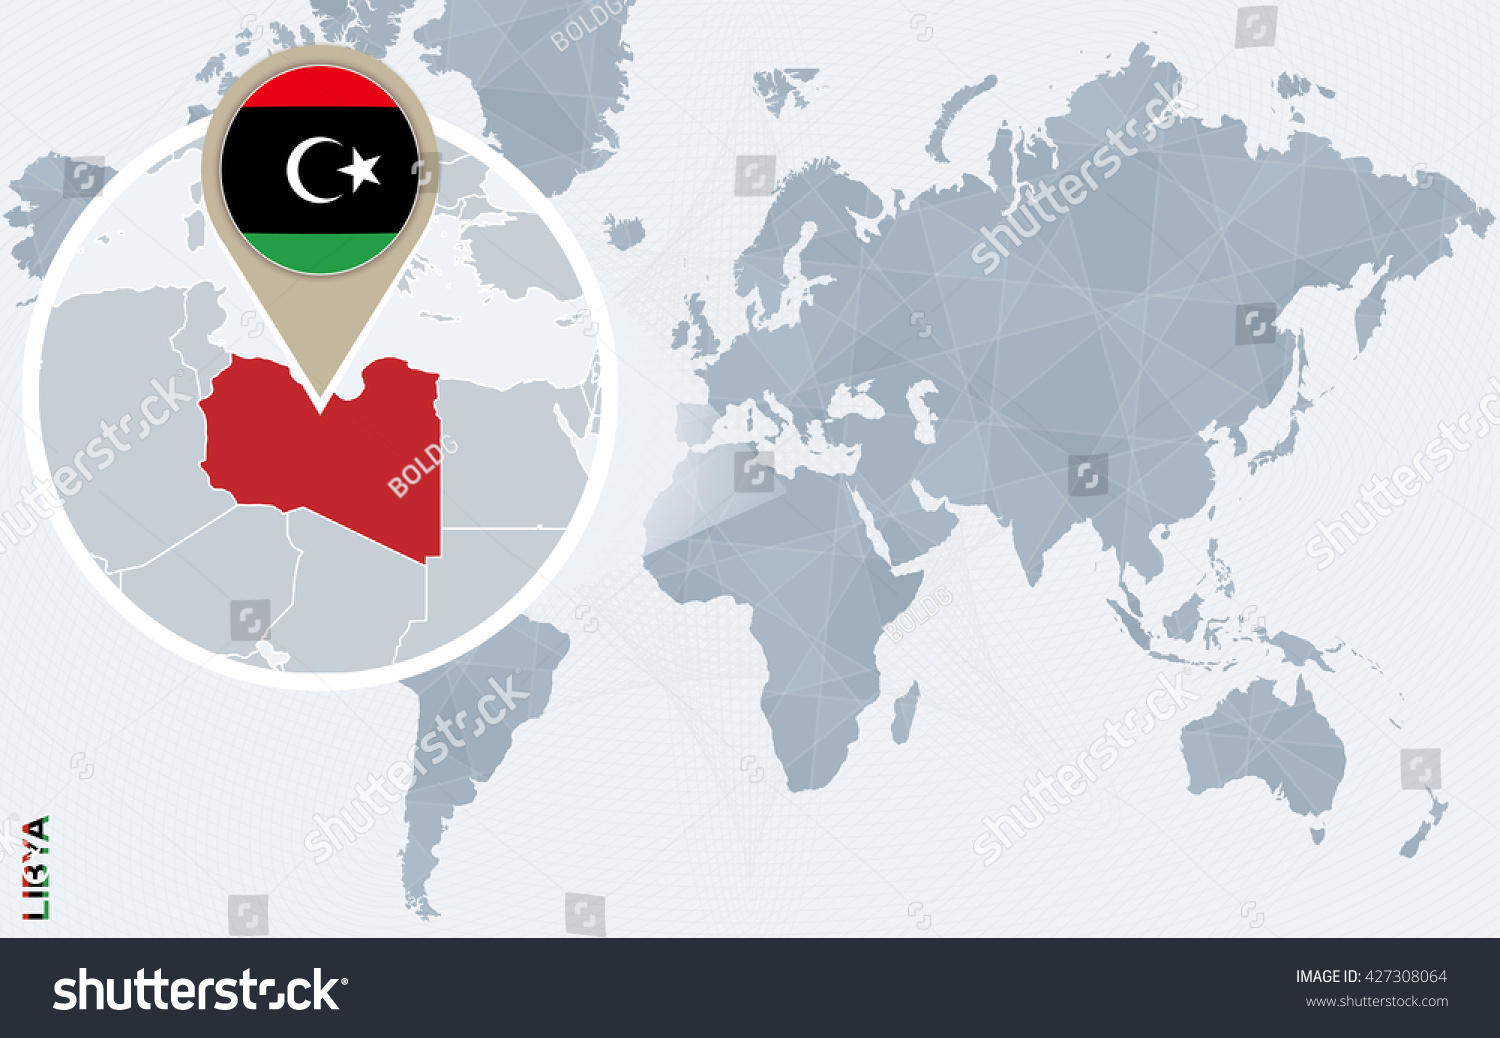 Abstract blue world map magnified libya stock vector 427308064 abstract blue world map with magnified libya libya flag and map vector illustration gumiabroncs Images